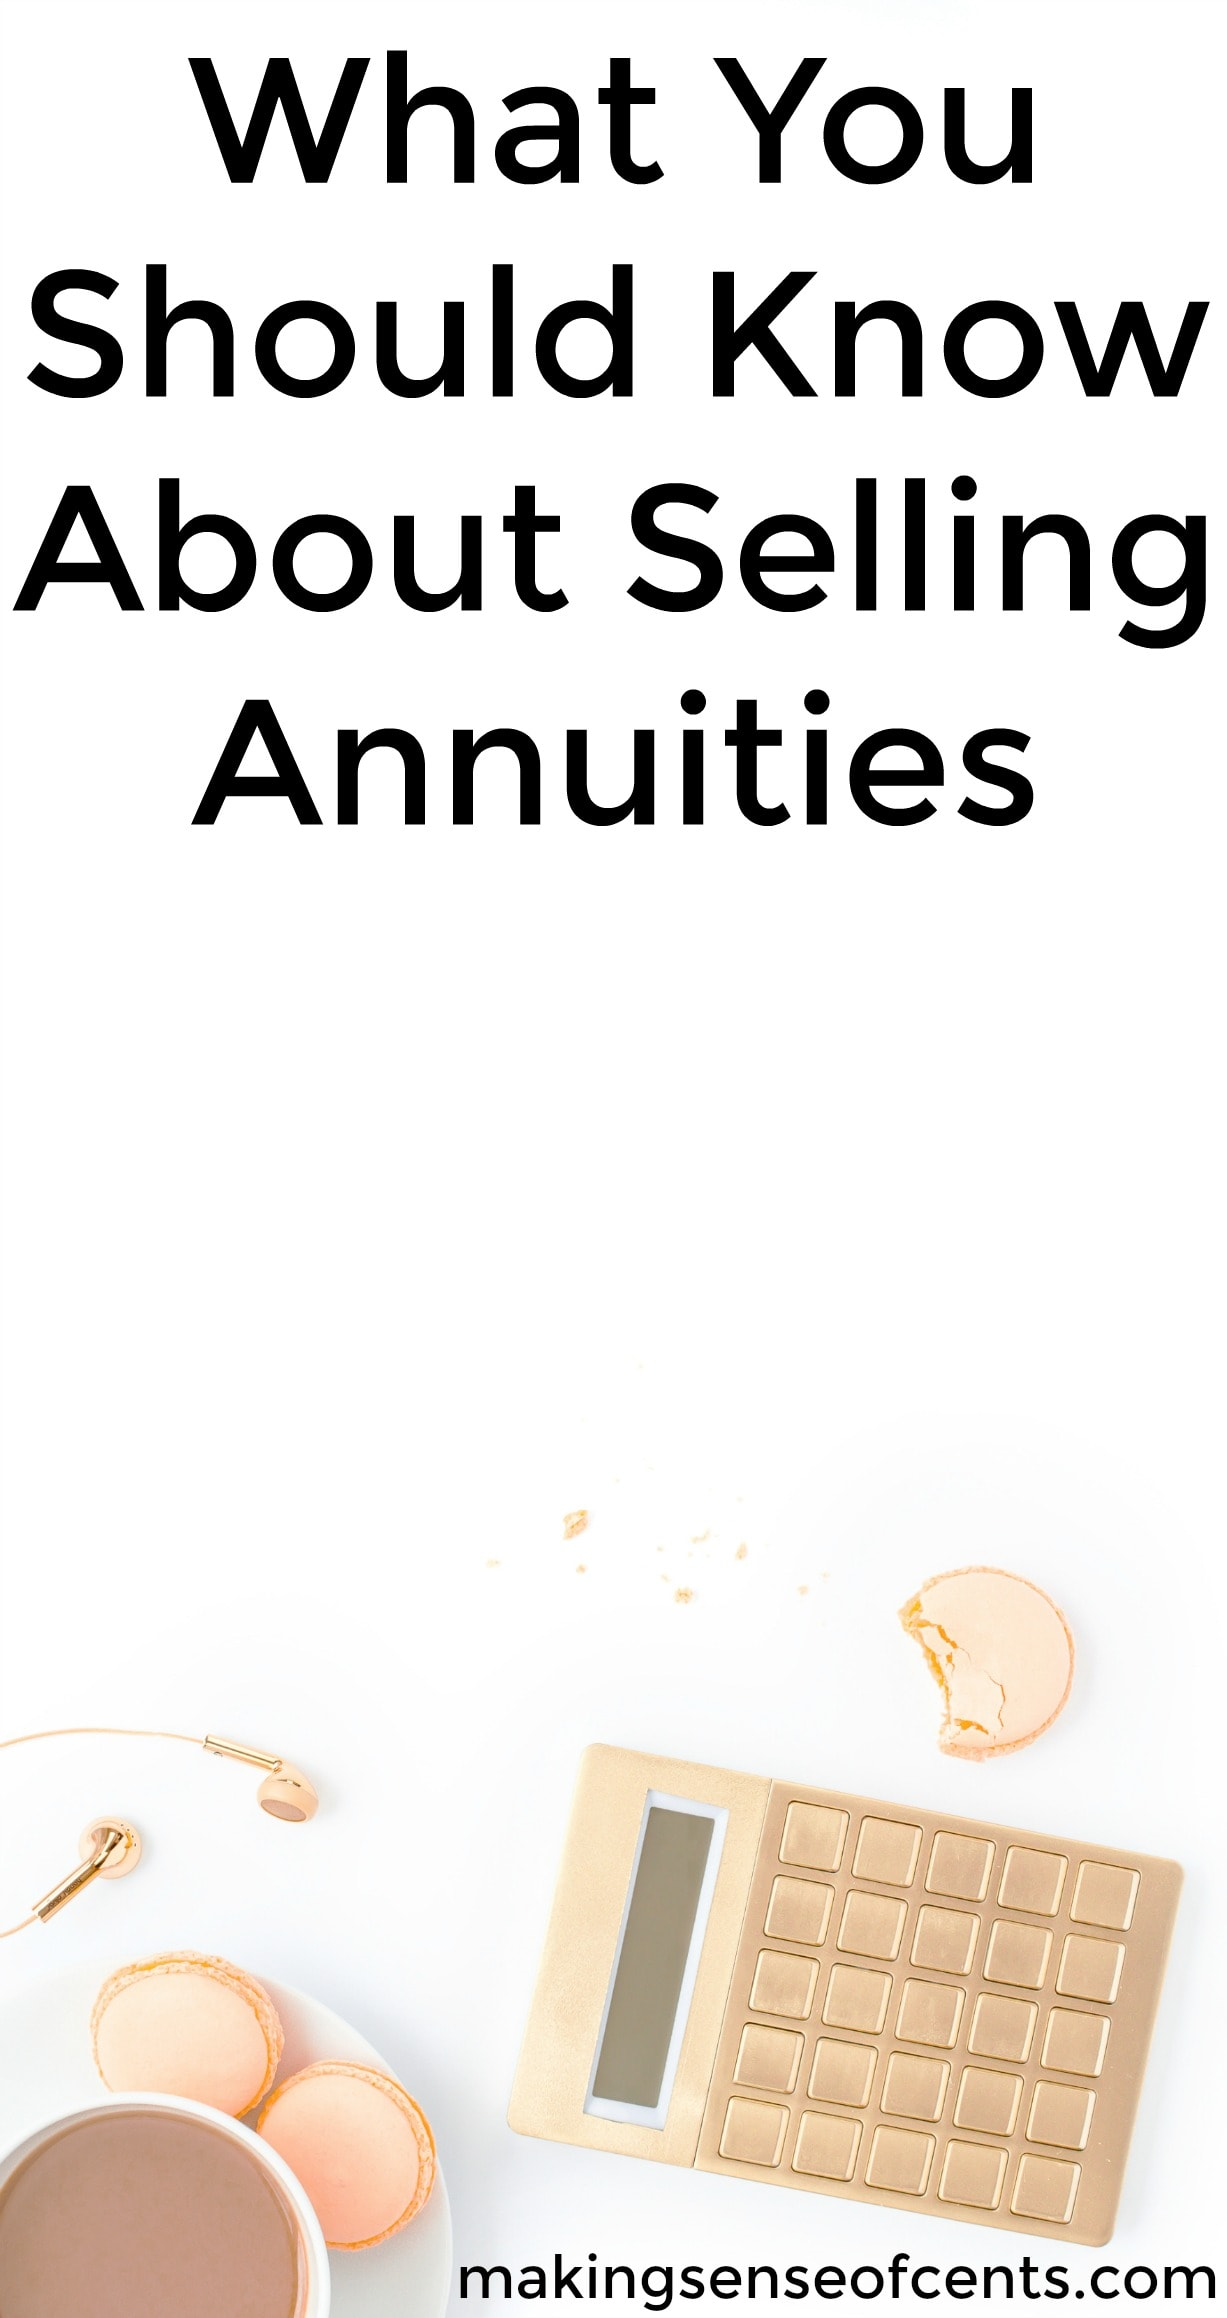 Find out what you should know about selling annuties. This is a great list!